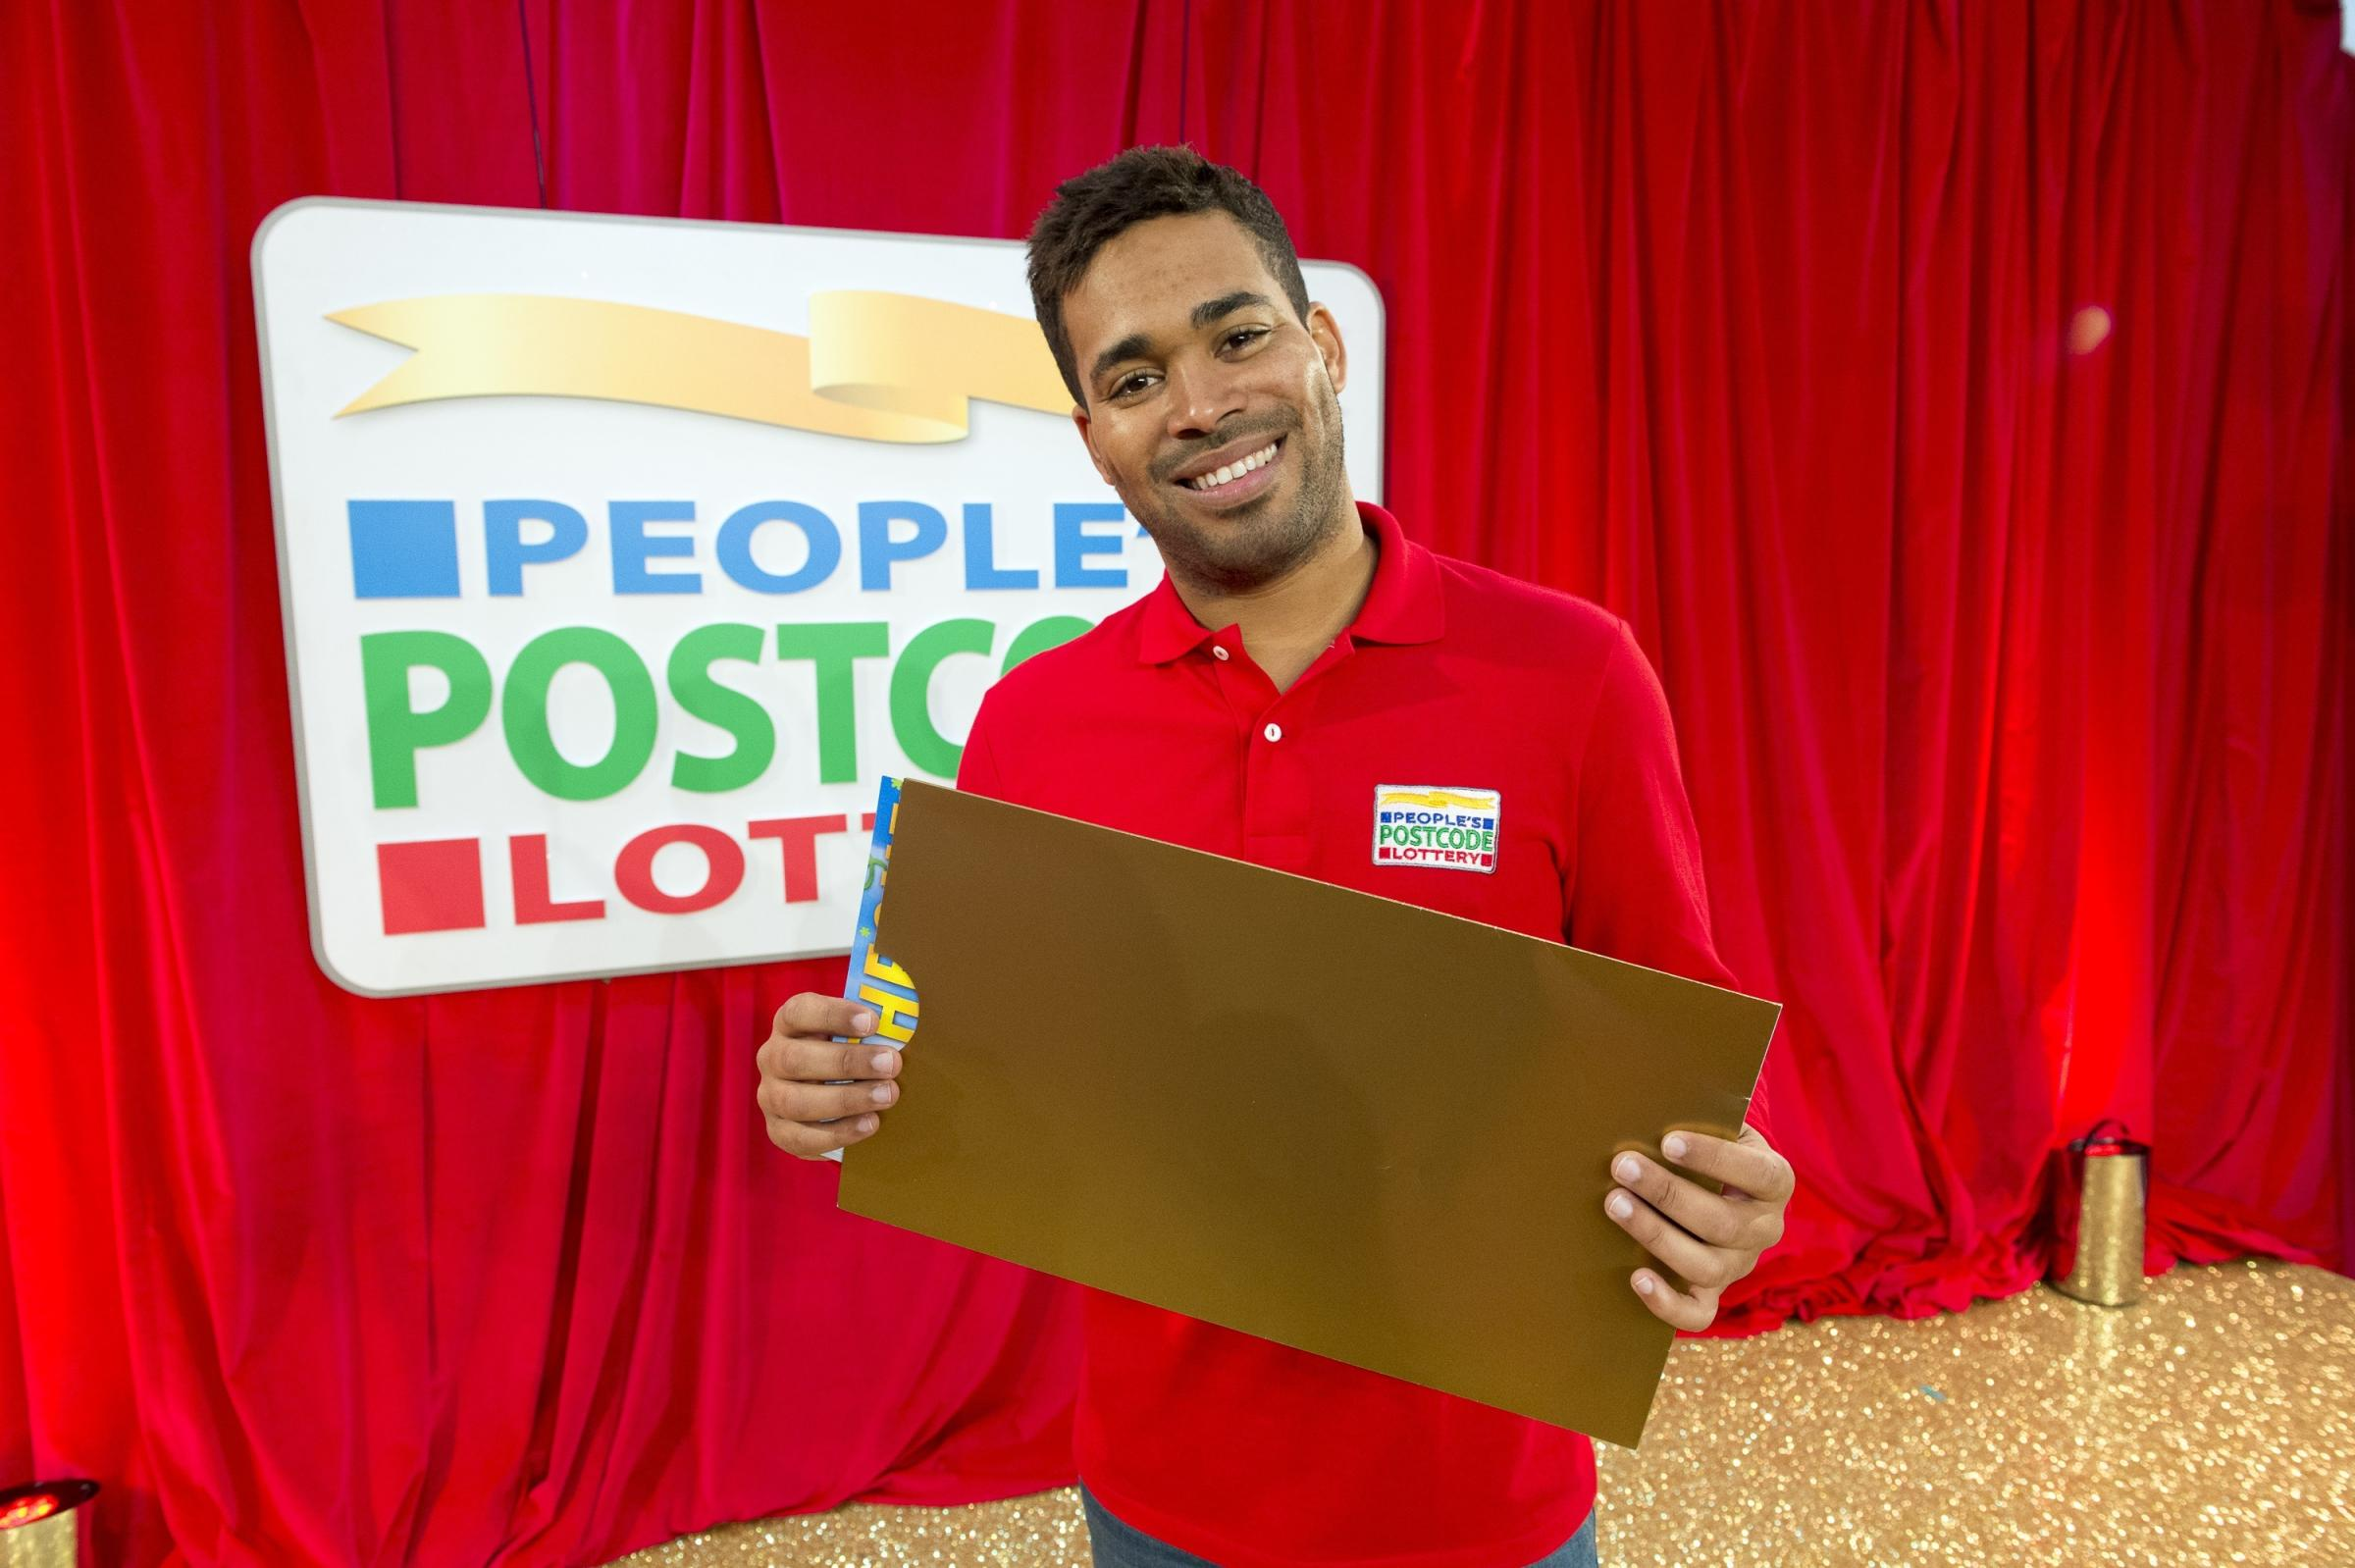 Peoples Postcode Lottery ambassador Danyl Johnson. Picture by Darren Casey/DCimaging